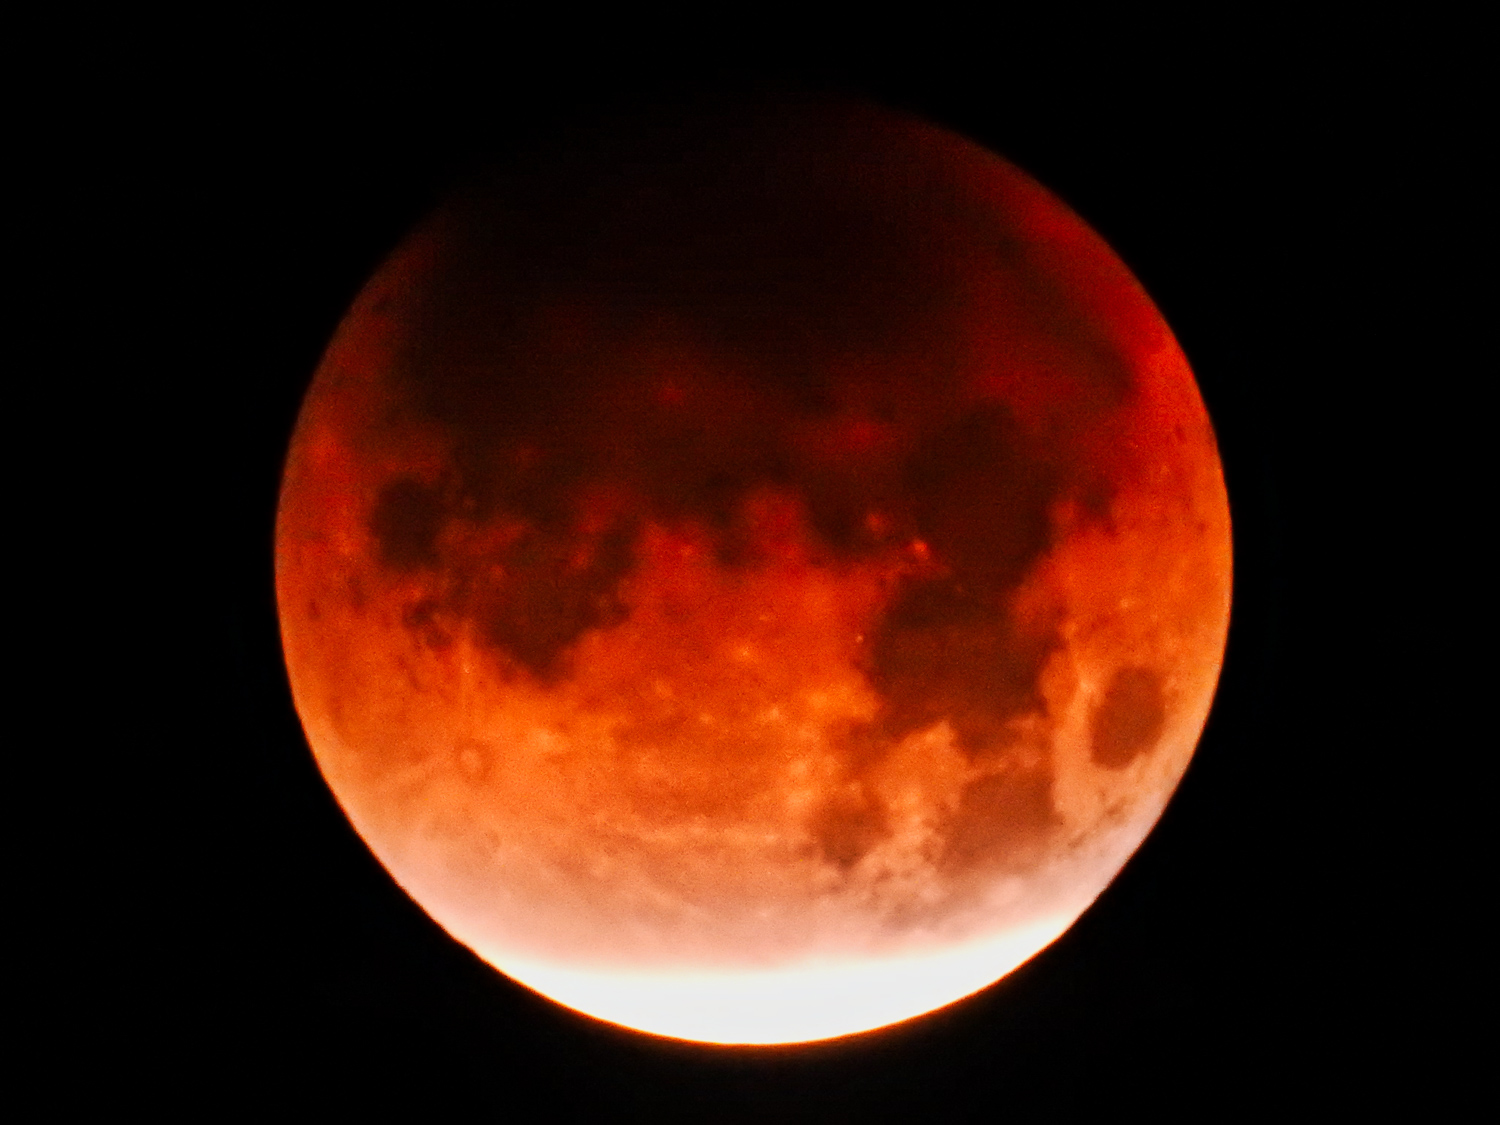 Eclipse, Supermoon, a Blue Moon and Blood Moon